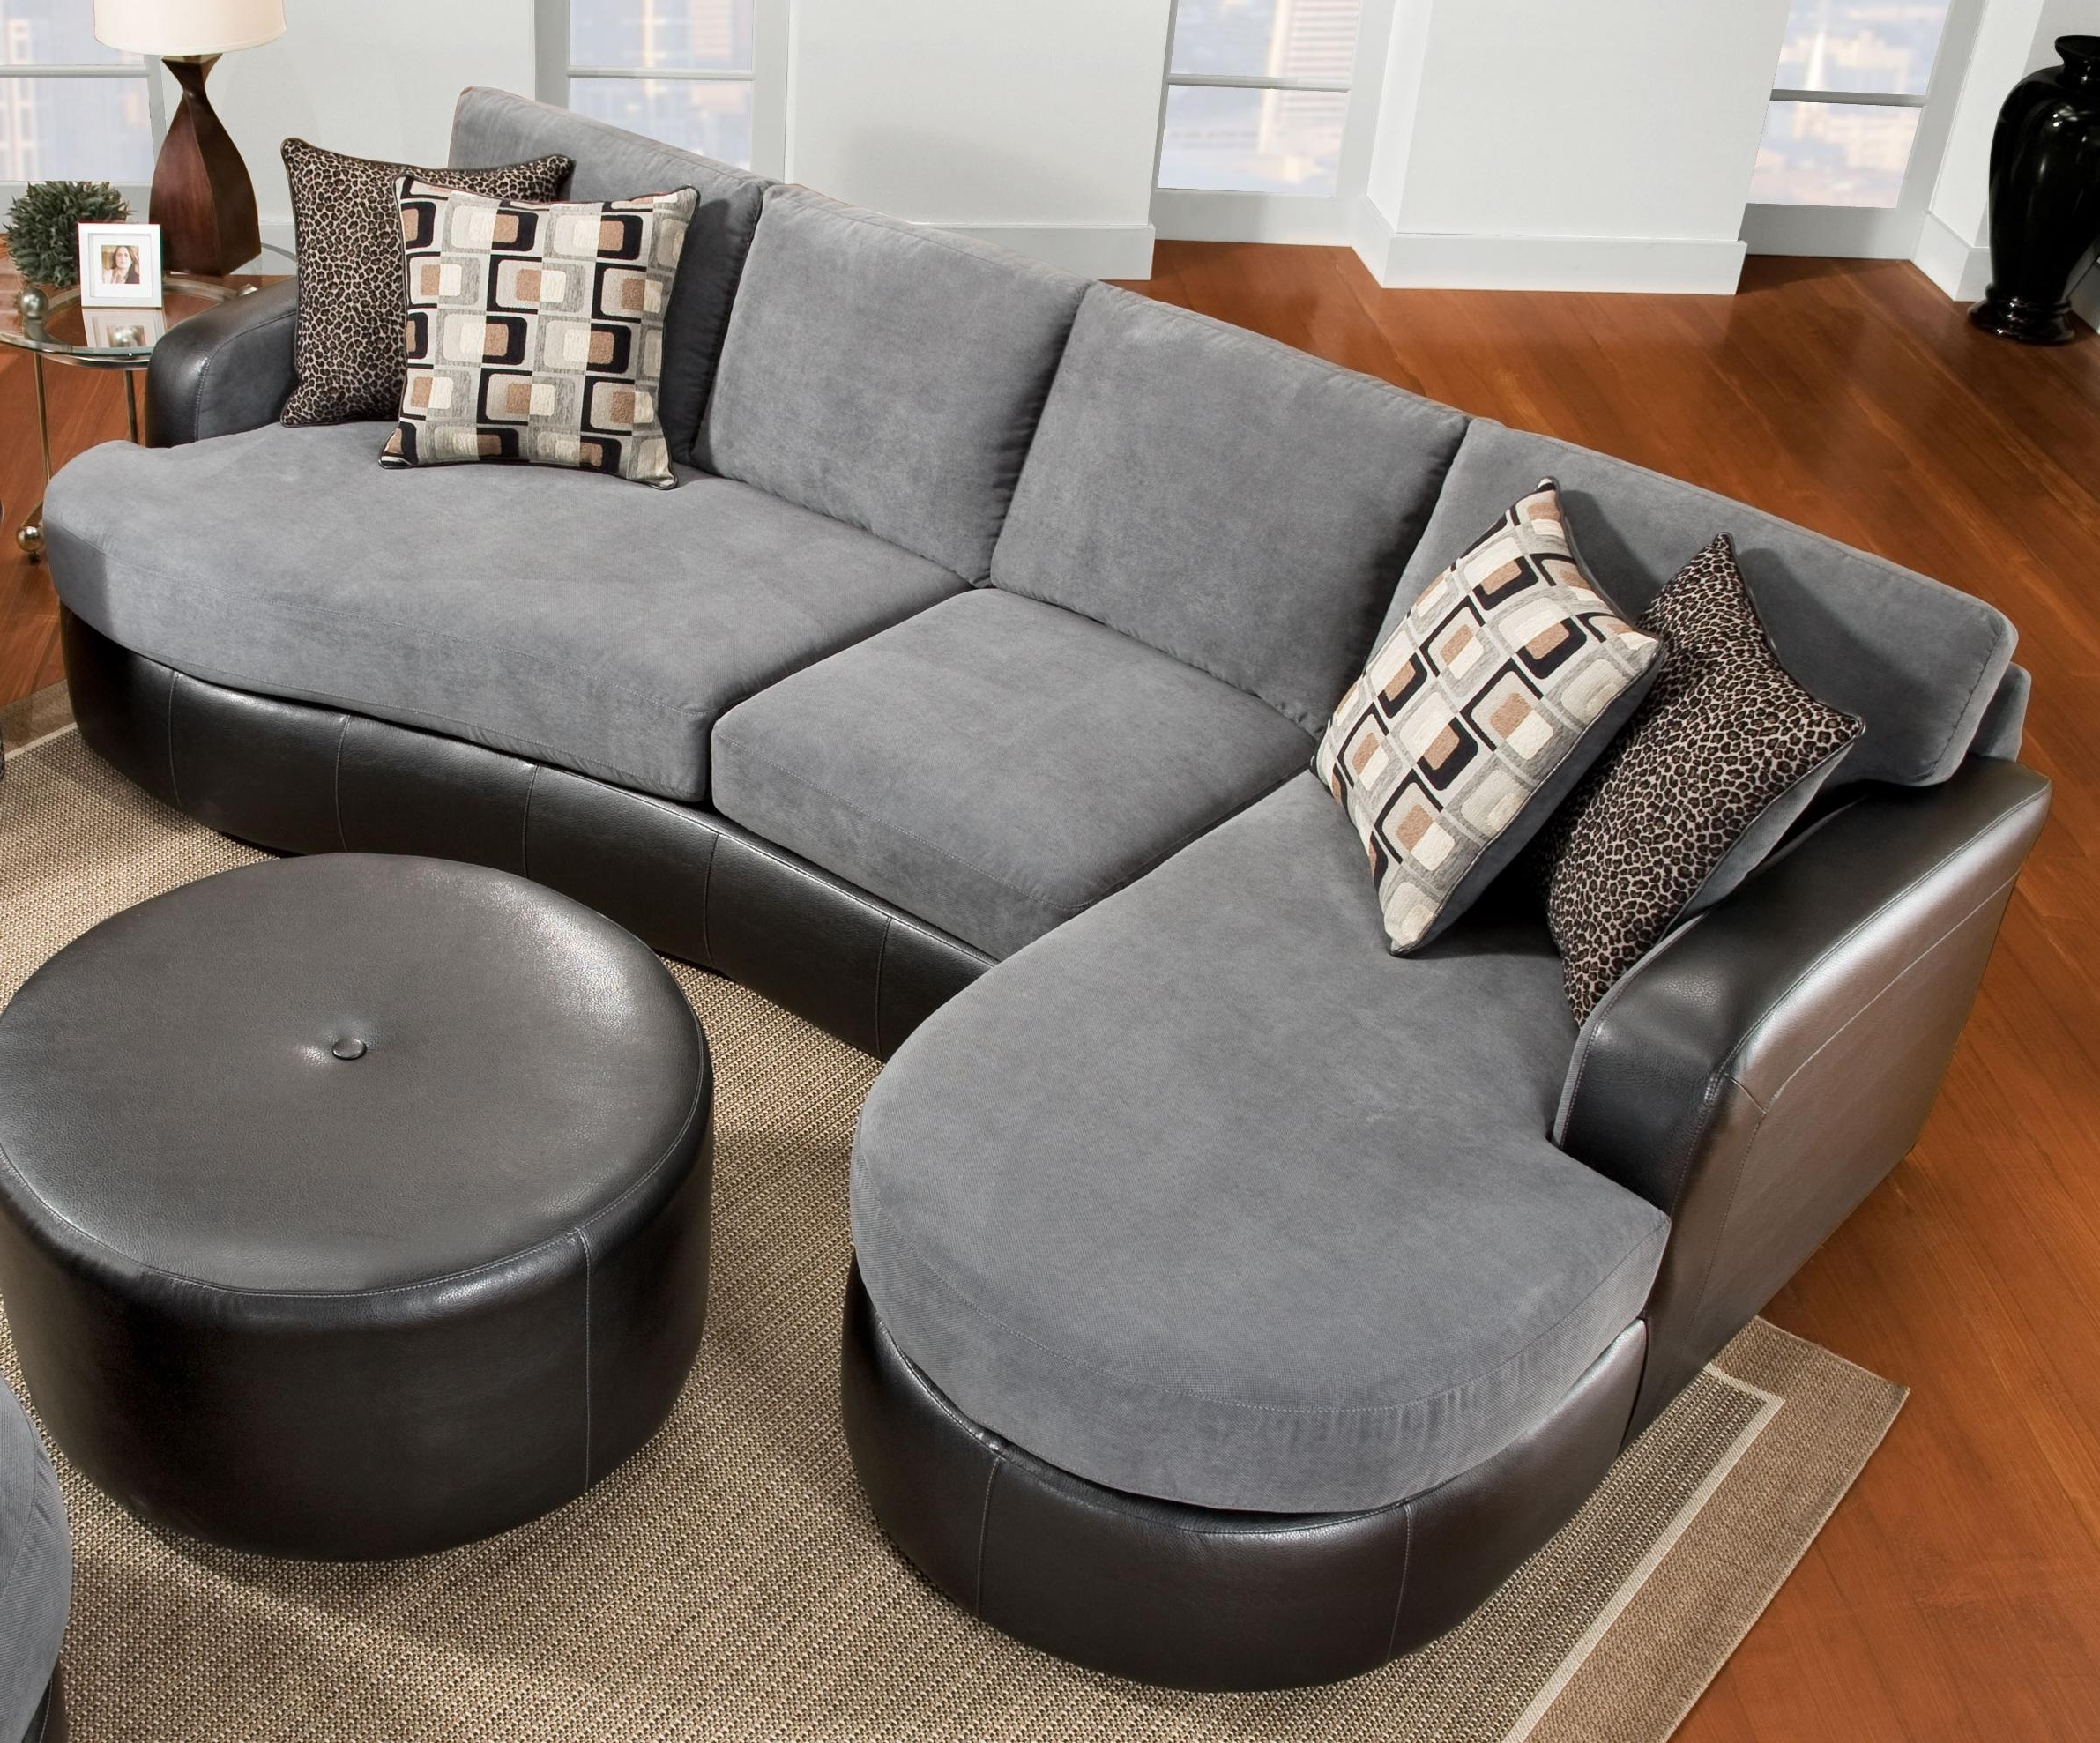 Home Design : Dazzling Best Modern Fabric Sectional Sofas With In Preferred Black Leather Sectionals With Ottoman (View 13 of 15)